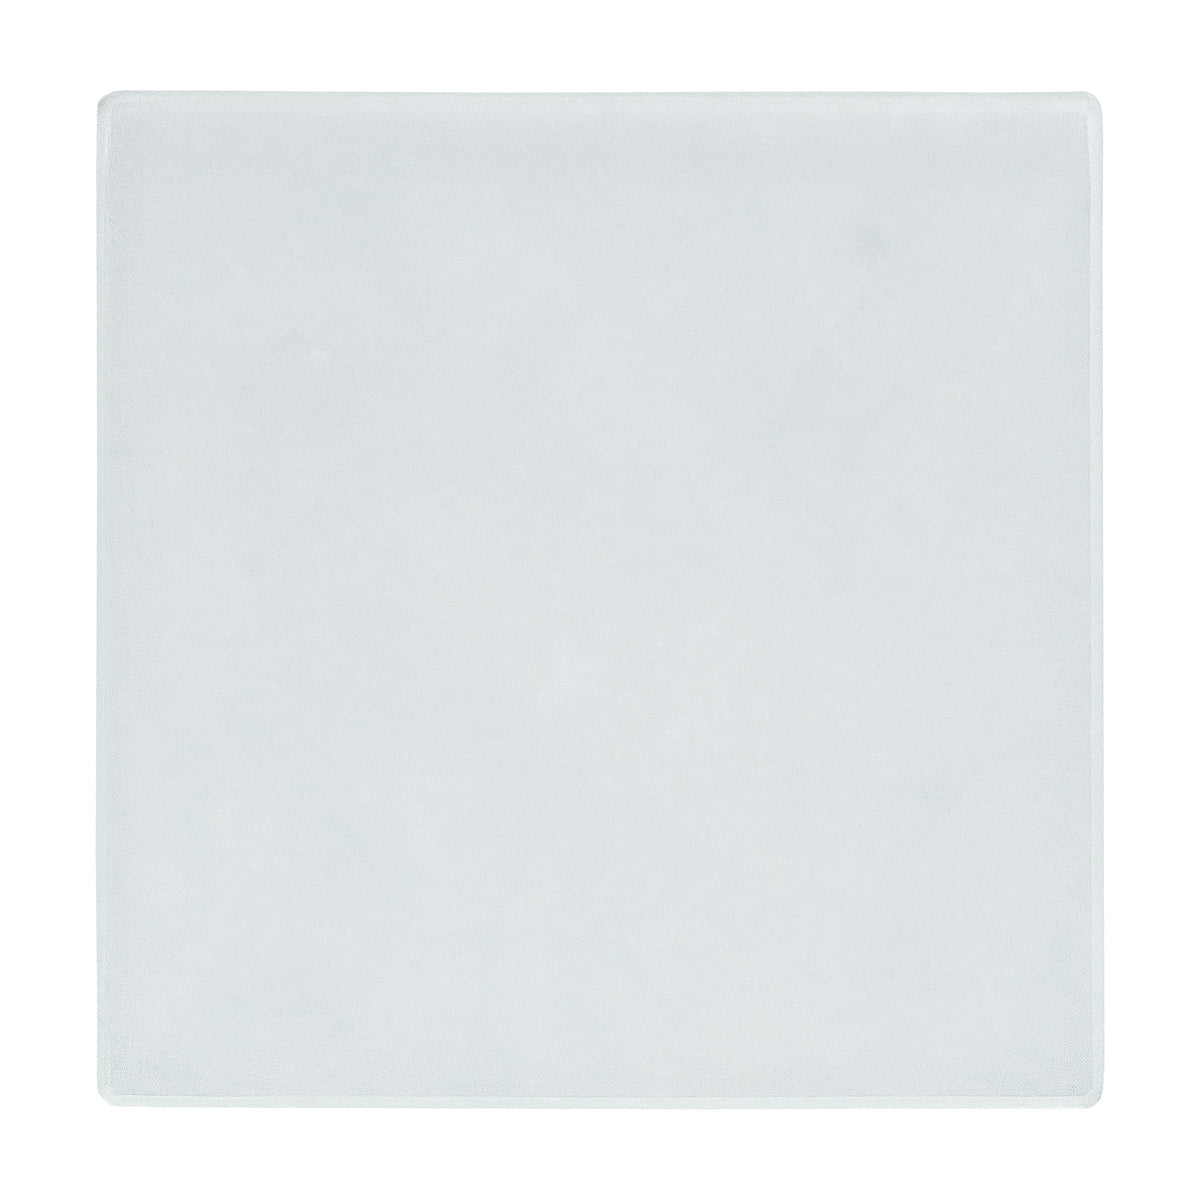 Harbour Housewares Square Glass Coaster - White